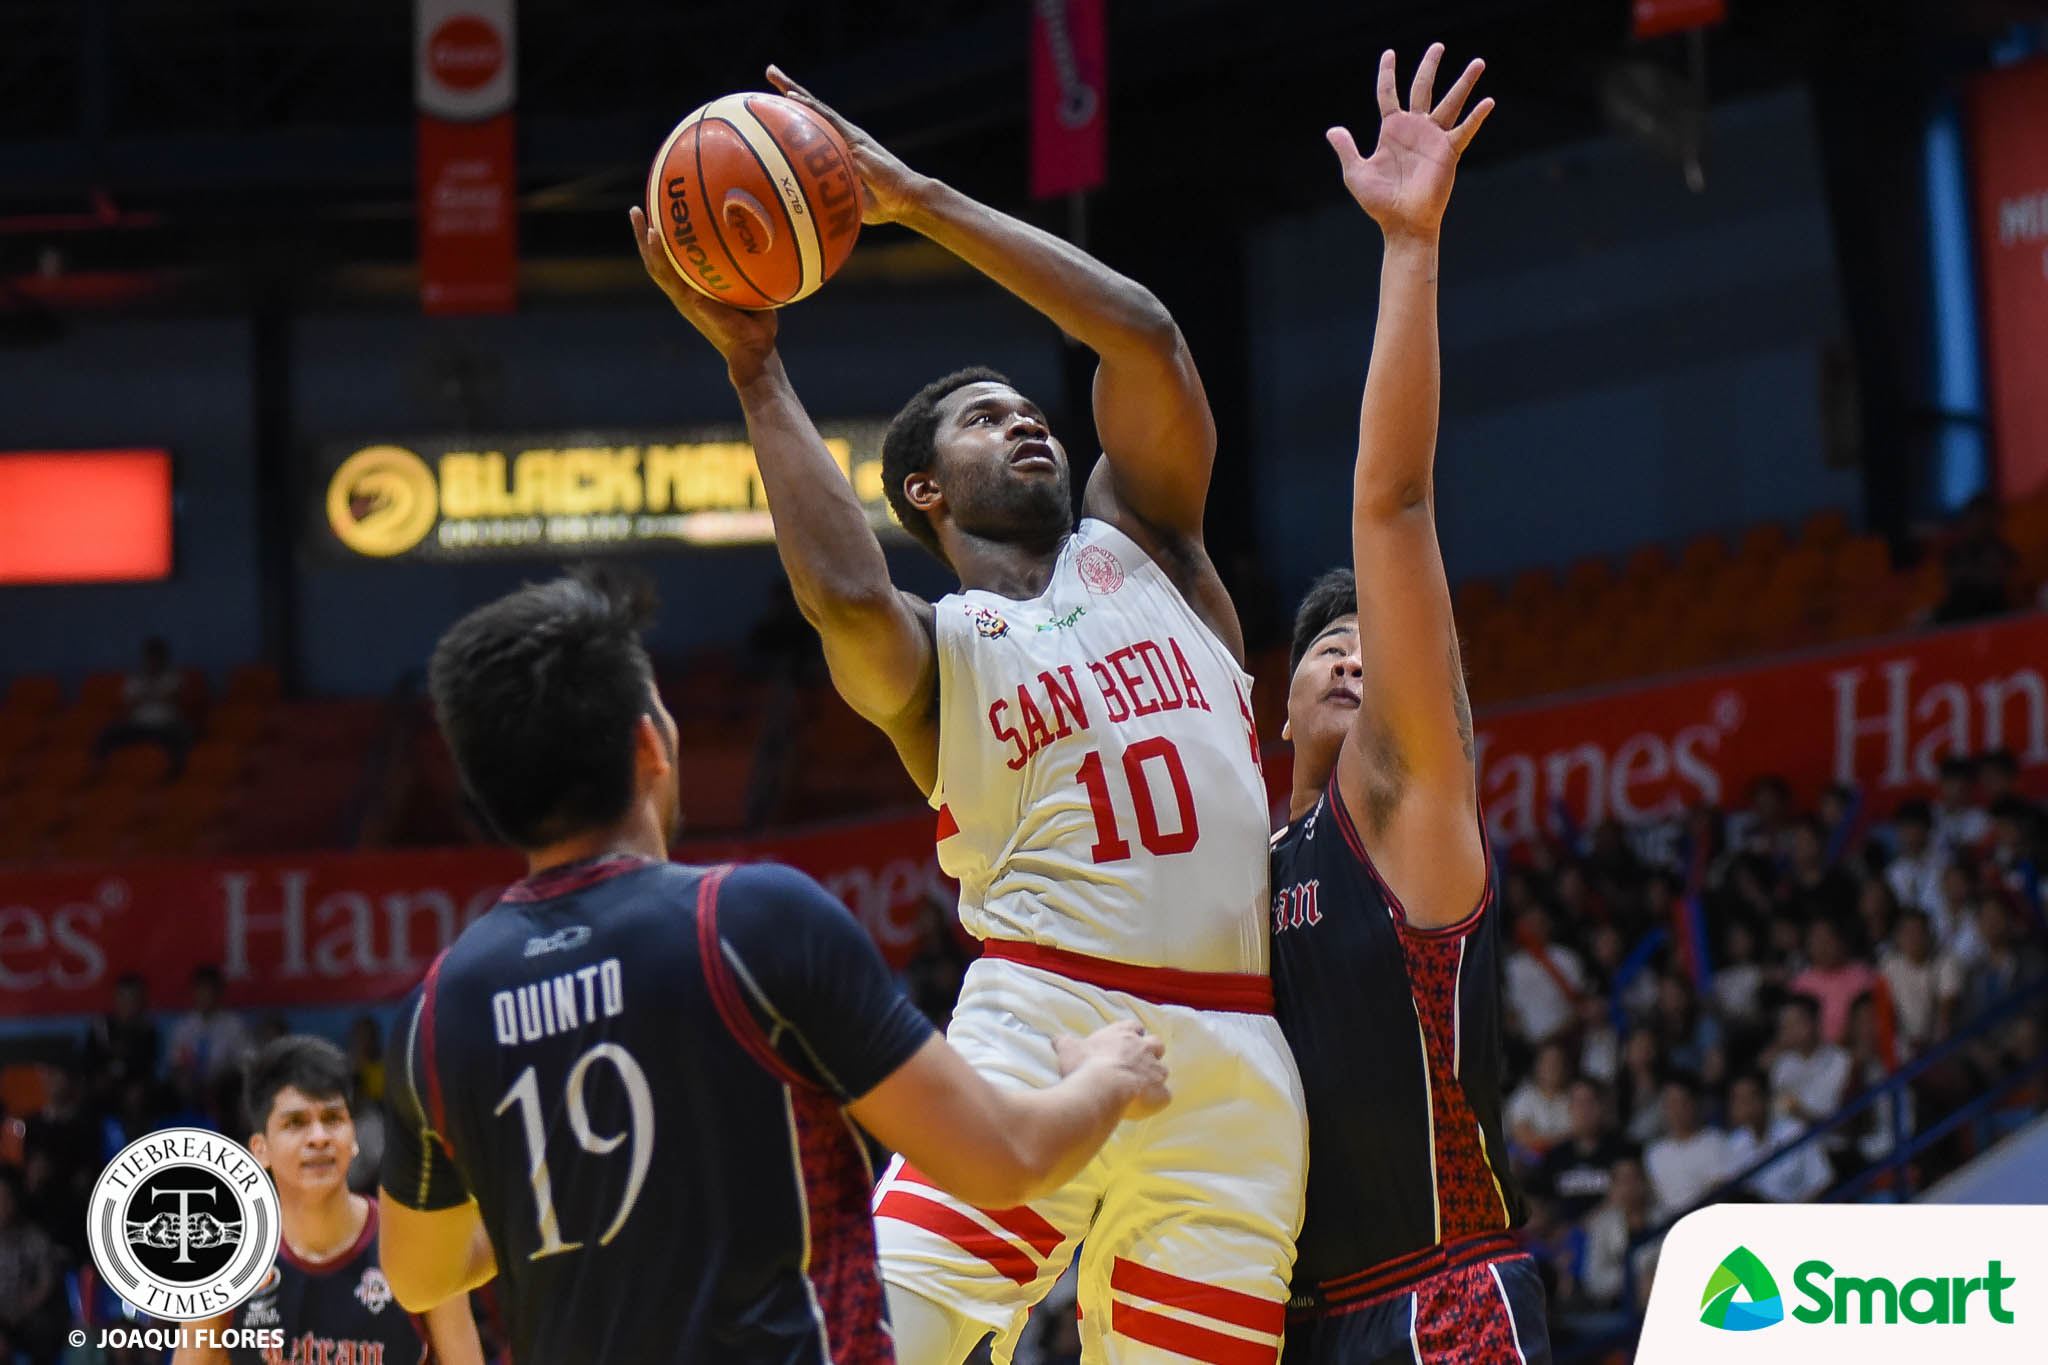 Tiebreaker Times Chooks-to-Go Player of the Week Donald Tankoua makes sure San Beda downs arch-rivals Basketball NCAA News SBC  San Beda Seniors Basketball NCAA Season 94 Seniors Basketball NCAA Season 94 NCAA Player of the Week Donald Tankoua